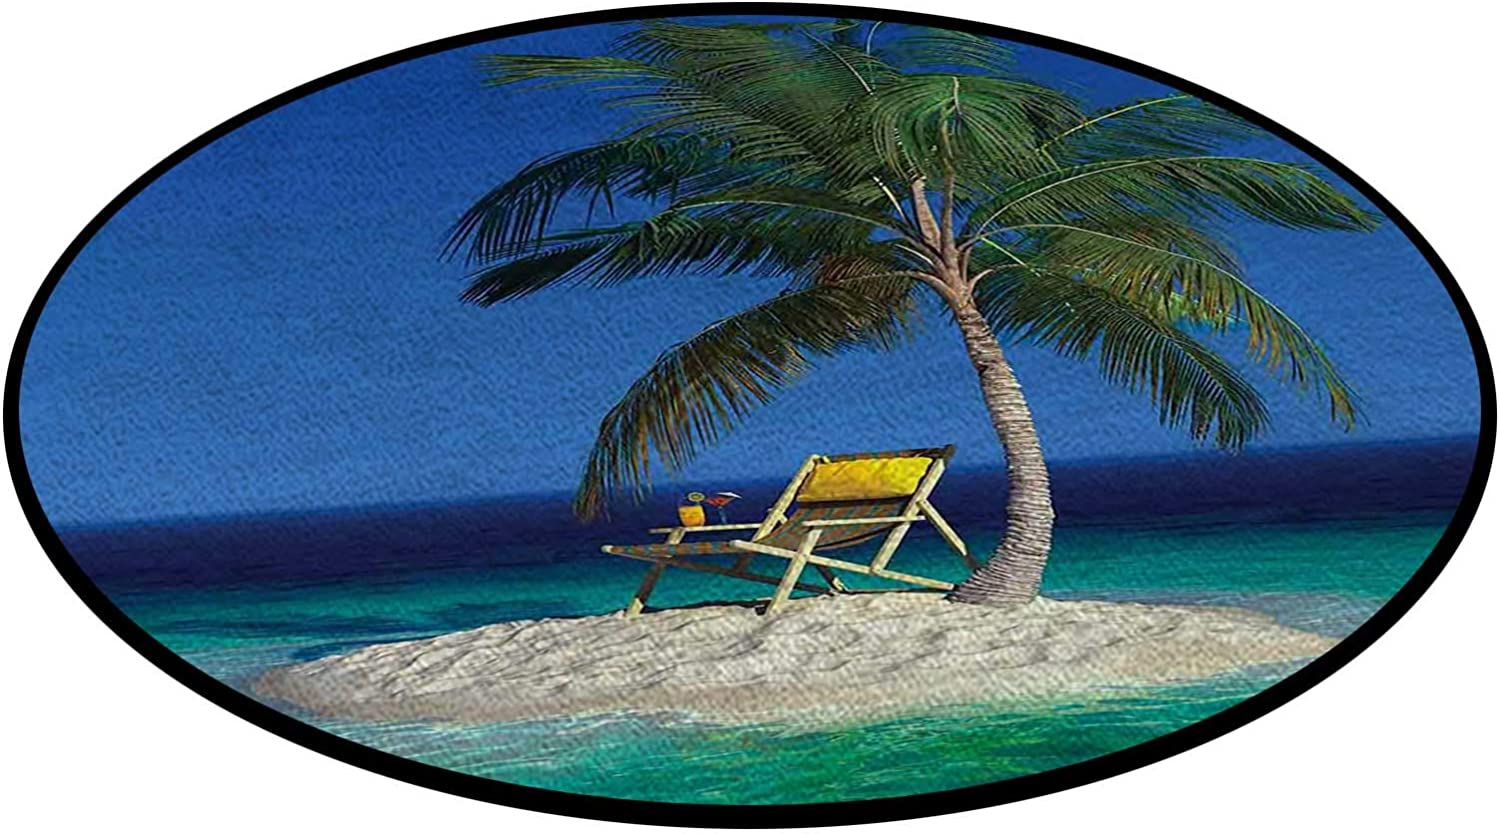 shipfree Chair Under a Palm Tree Round Weekly update Ma Area Floor Decorative Rug